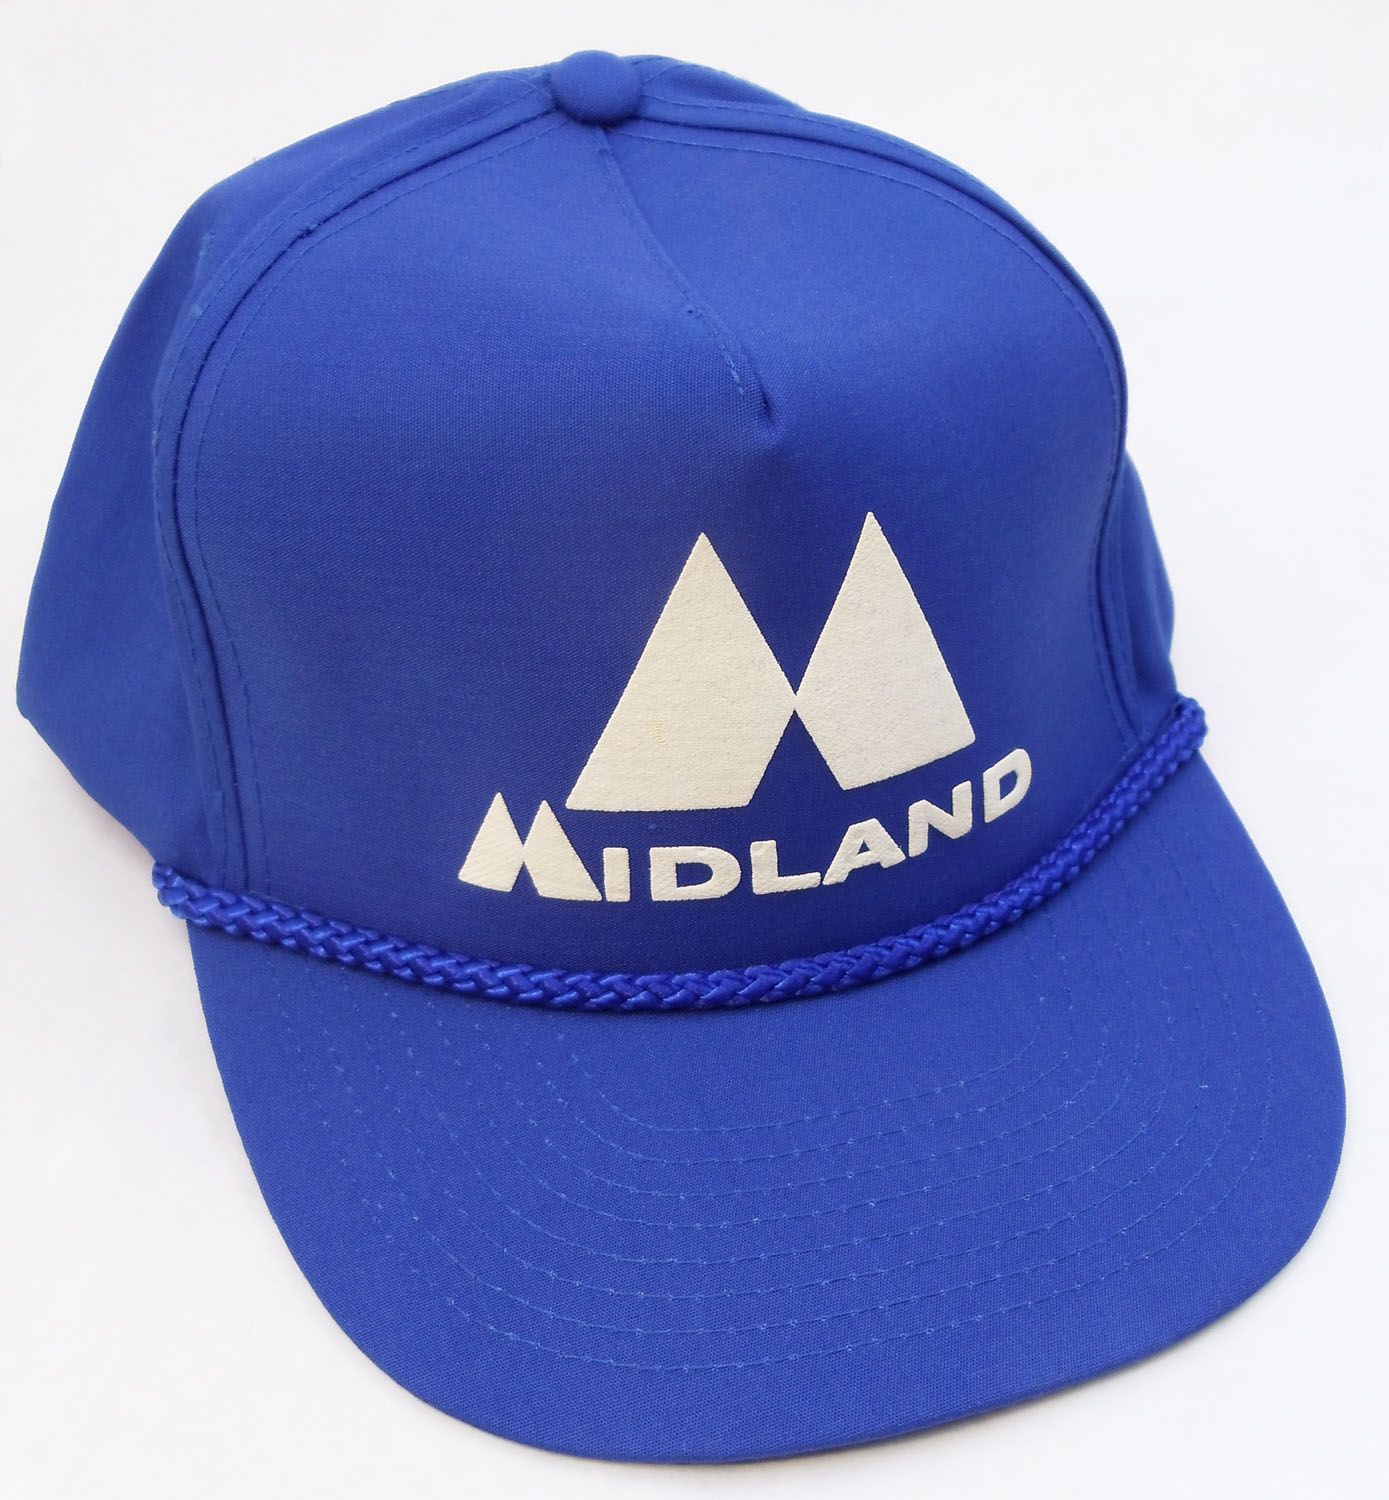 MIDLAND HAT (BLUE)